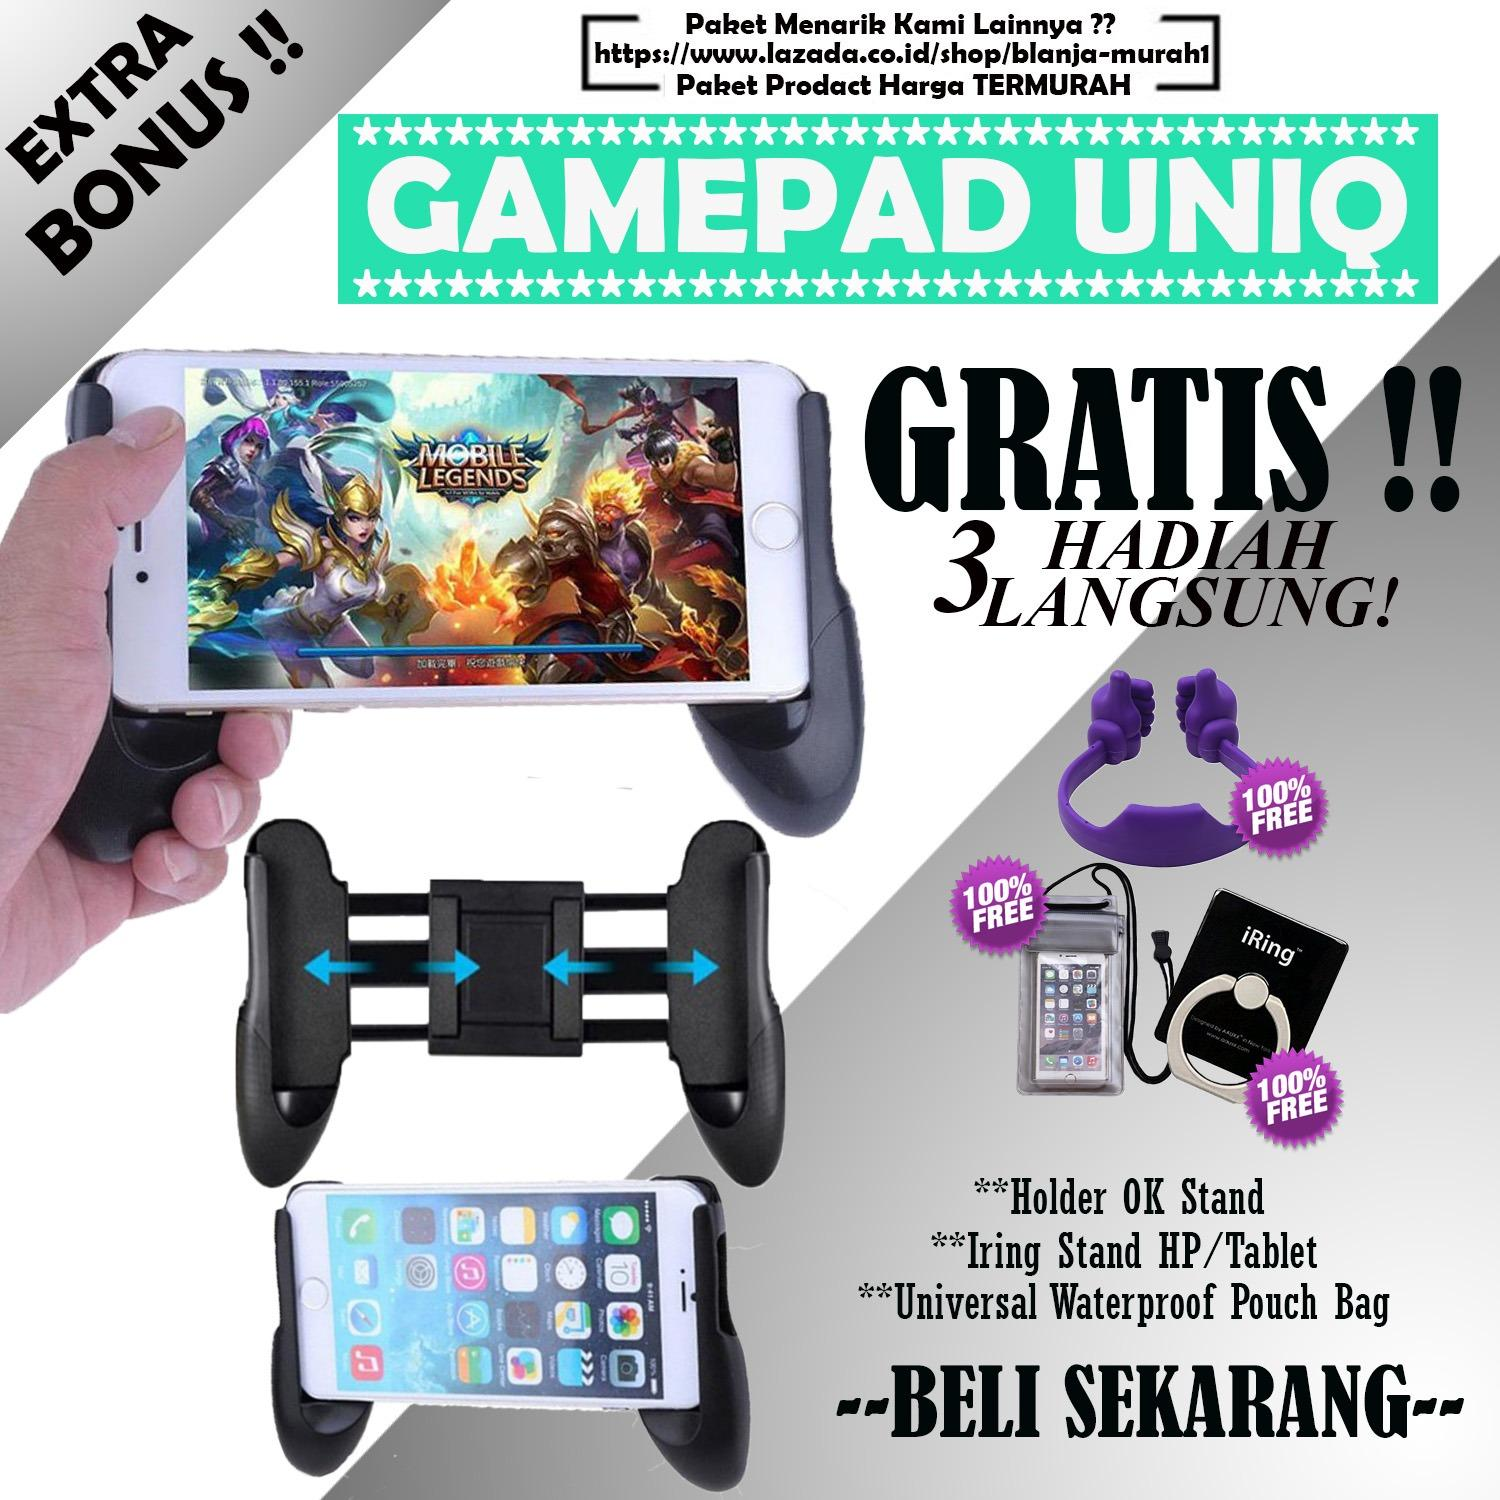 BLANJA MURAH Gamepad Mobile Joystick Controller - Game Pad Grip MOBA Smartphone AOV - GRATIS Universal Waterproof Pouch Bag + Iring Stand HP/Tablet & Holder OK Stand